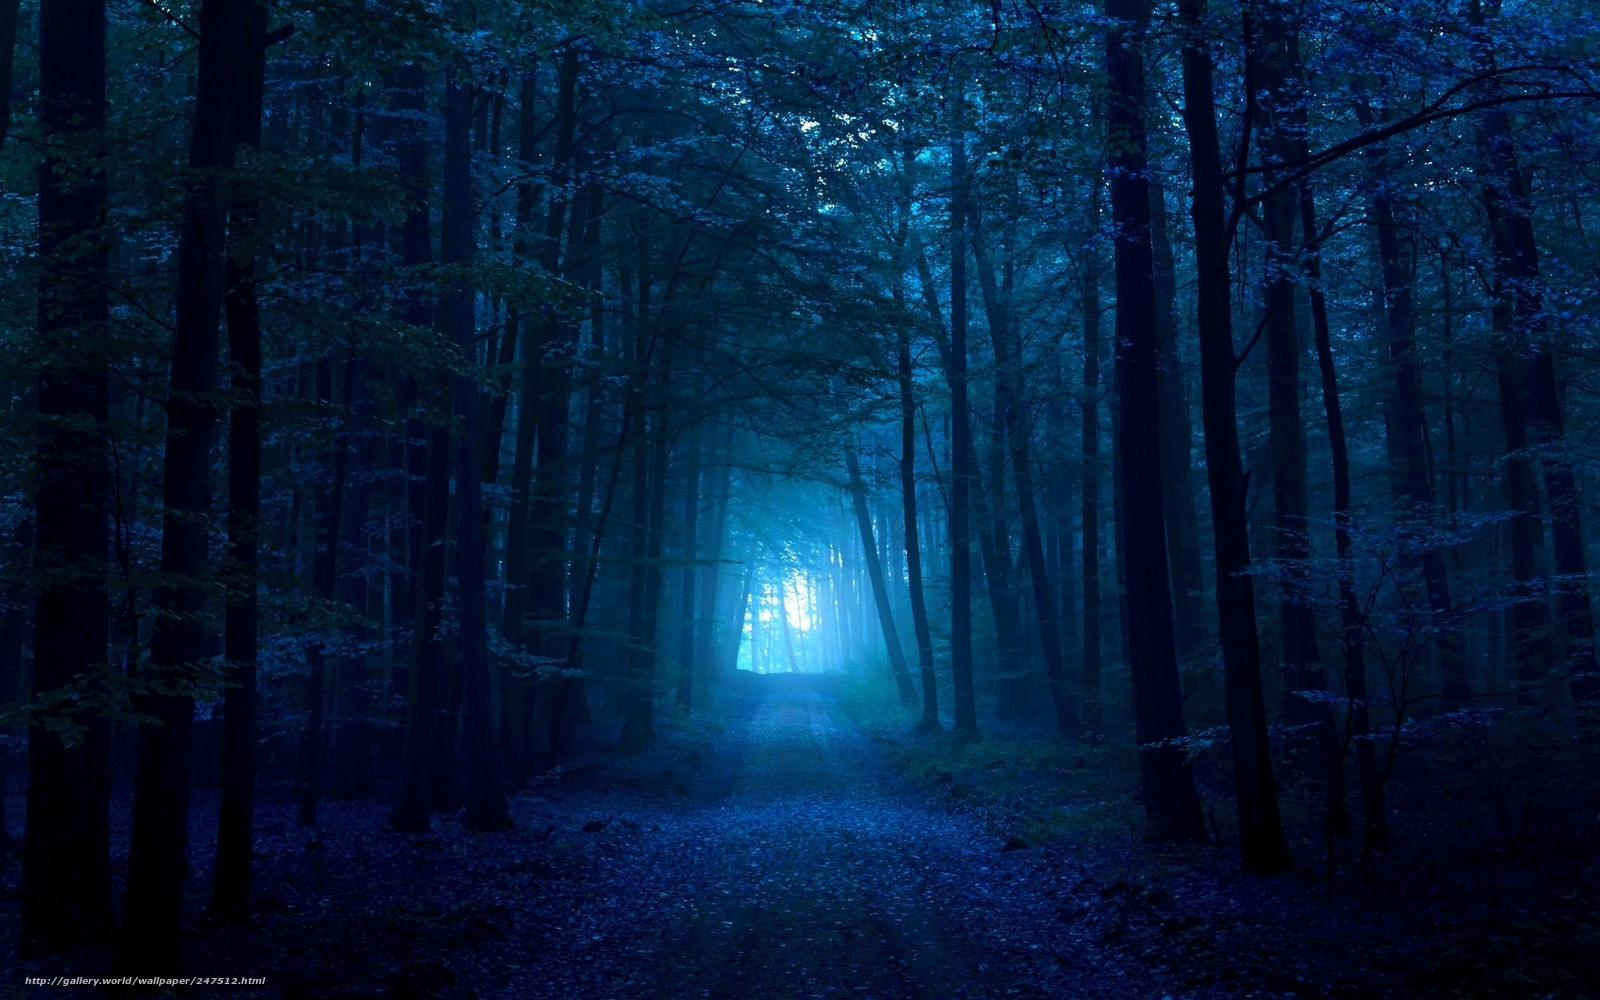 Download Wallpaper Nature Forest Road Night Free Desktop In The Resolution 1920x1200 Picture No247512